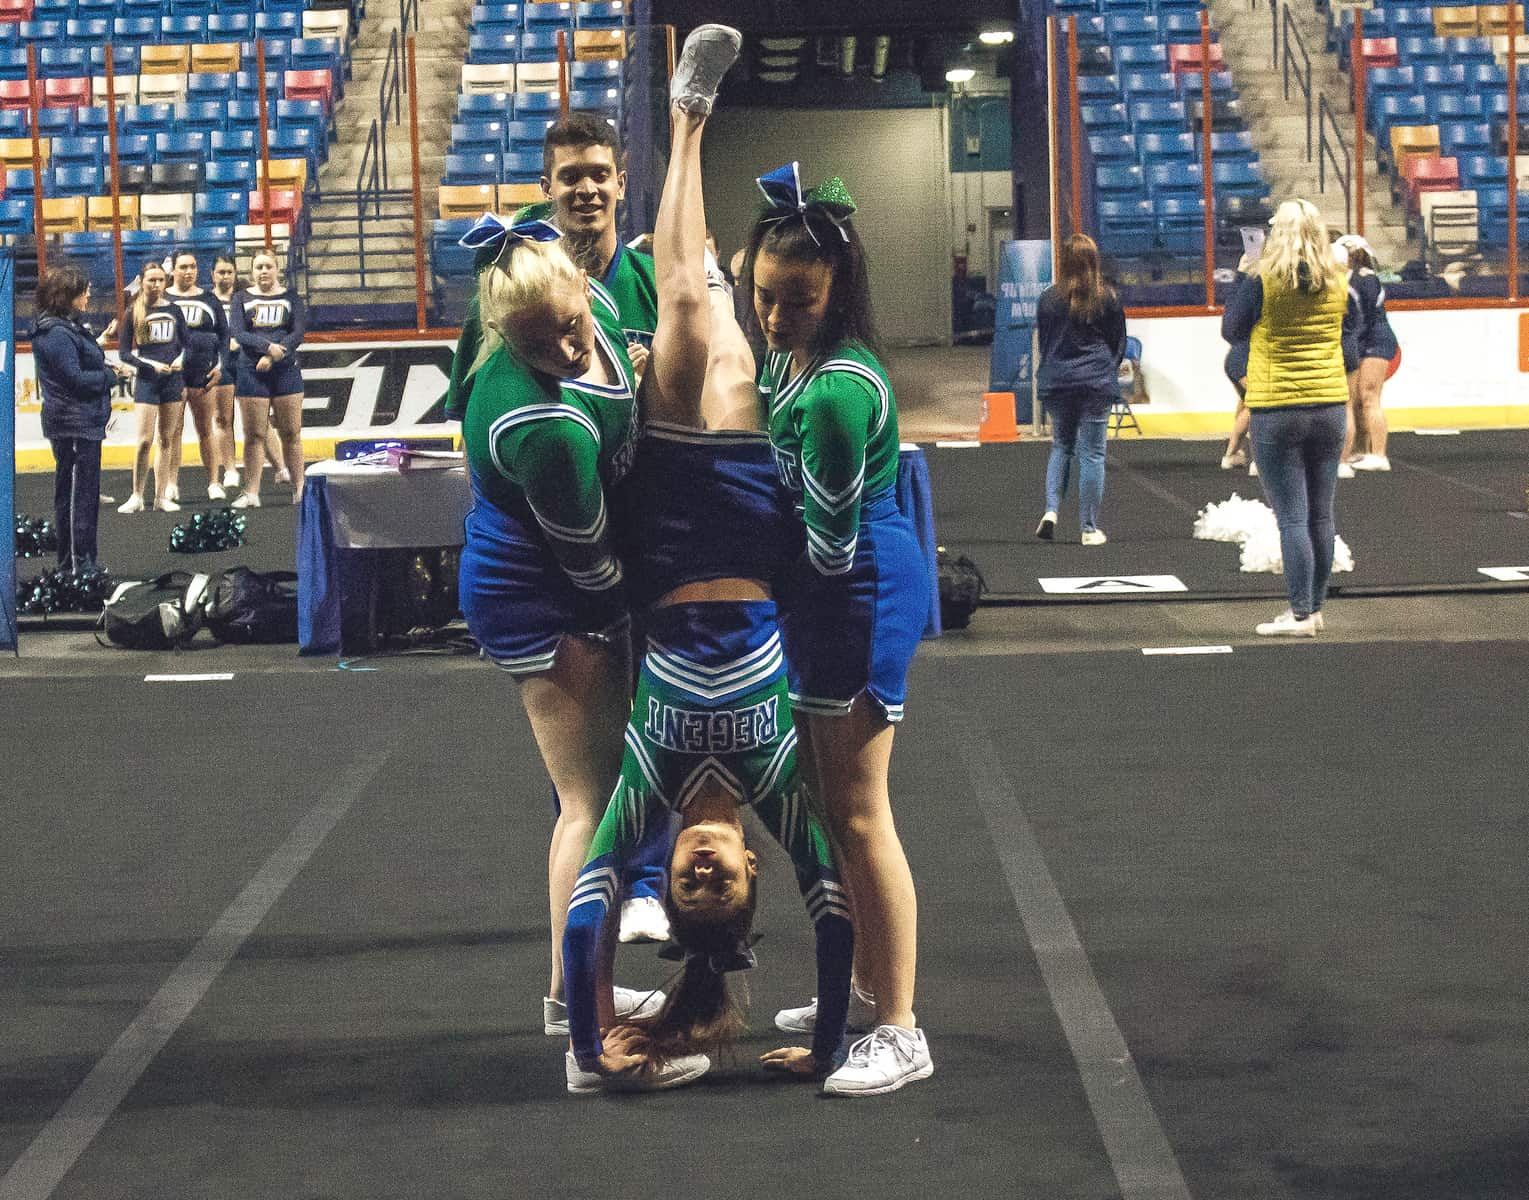 Regent's cheerleaders have put on their crowns as Royals and have stepped into the spotlight.